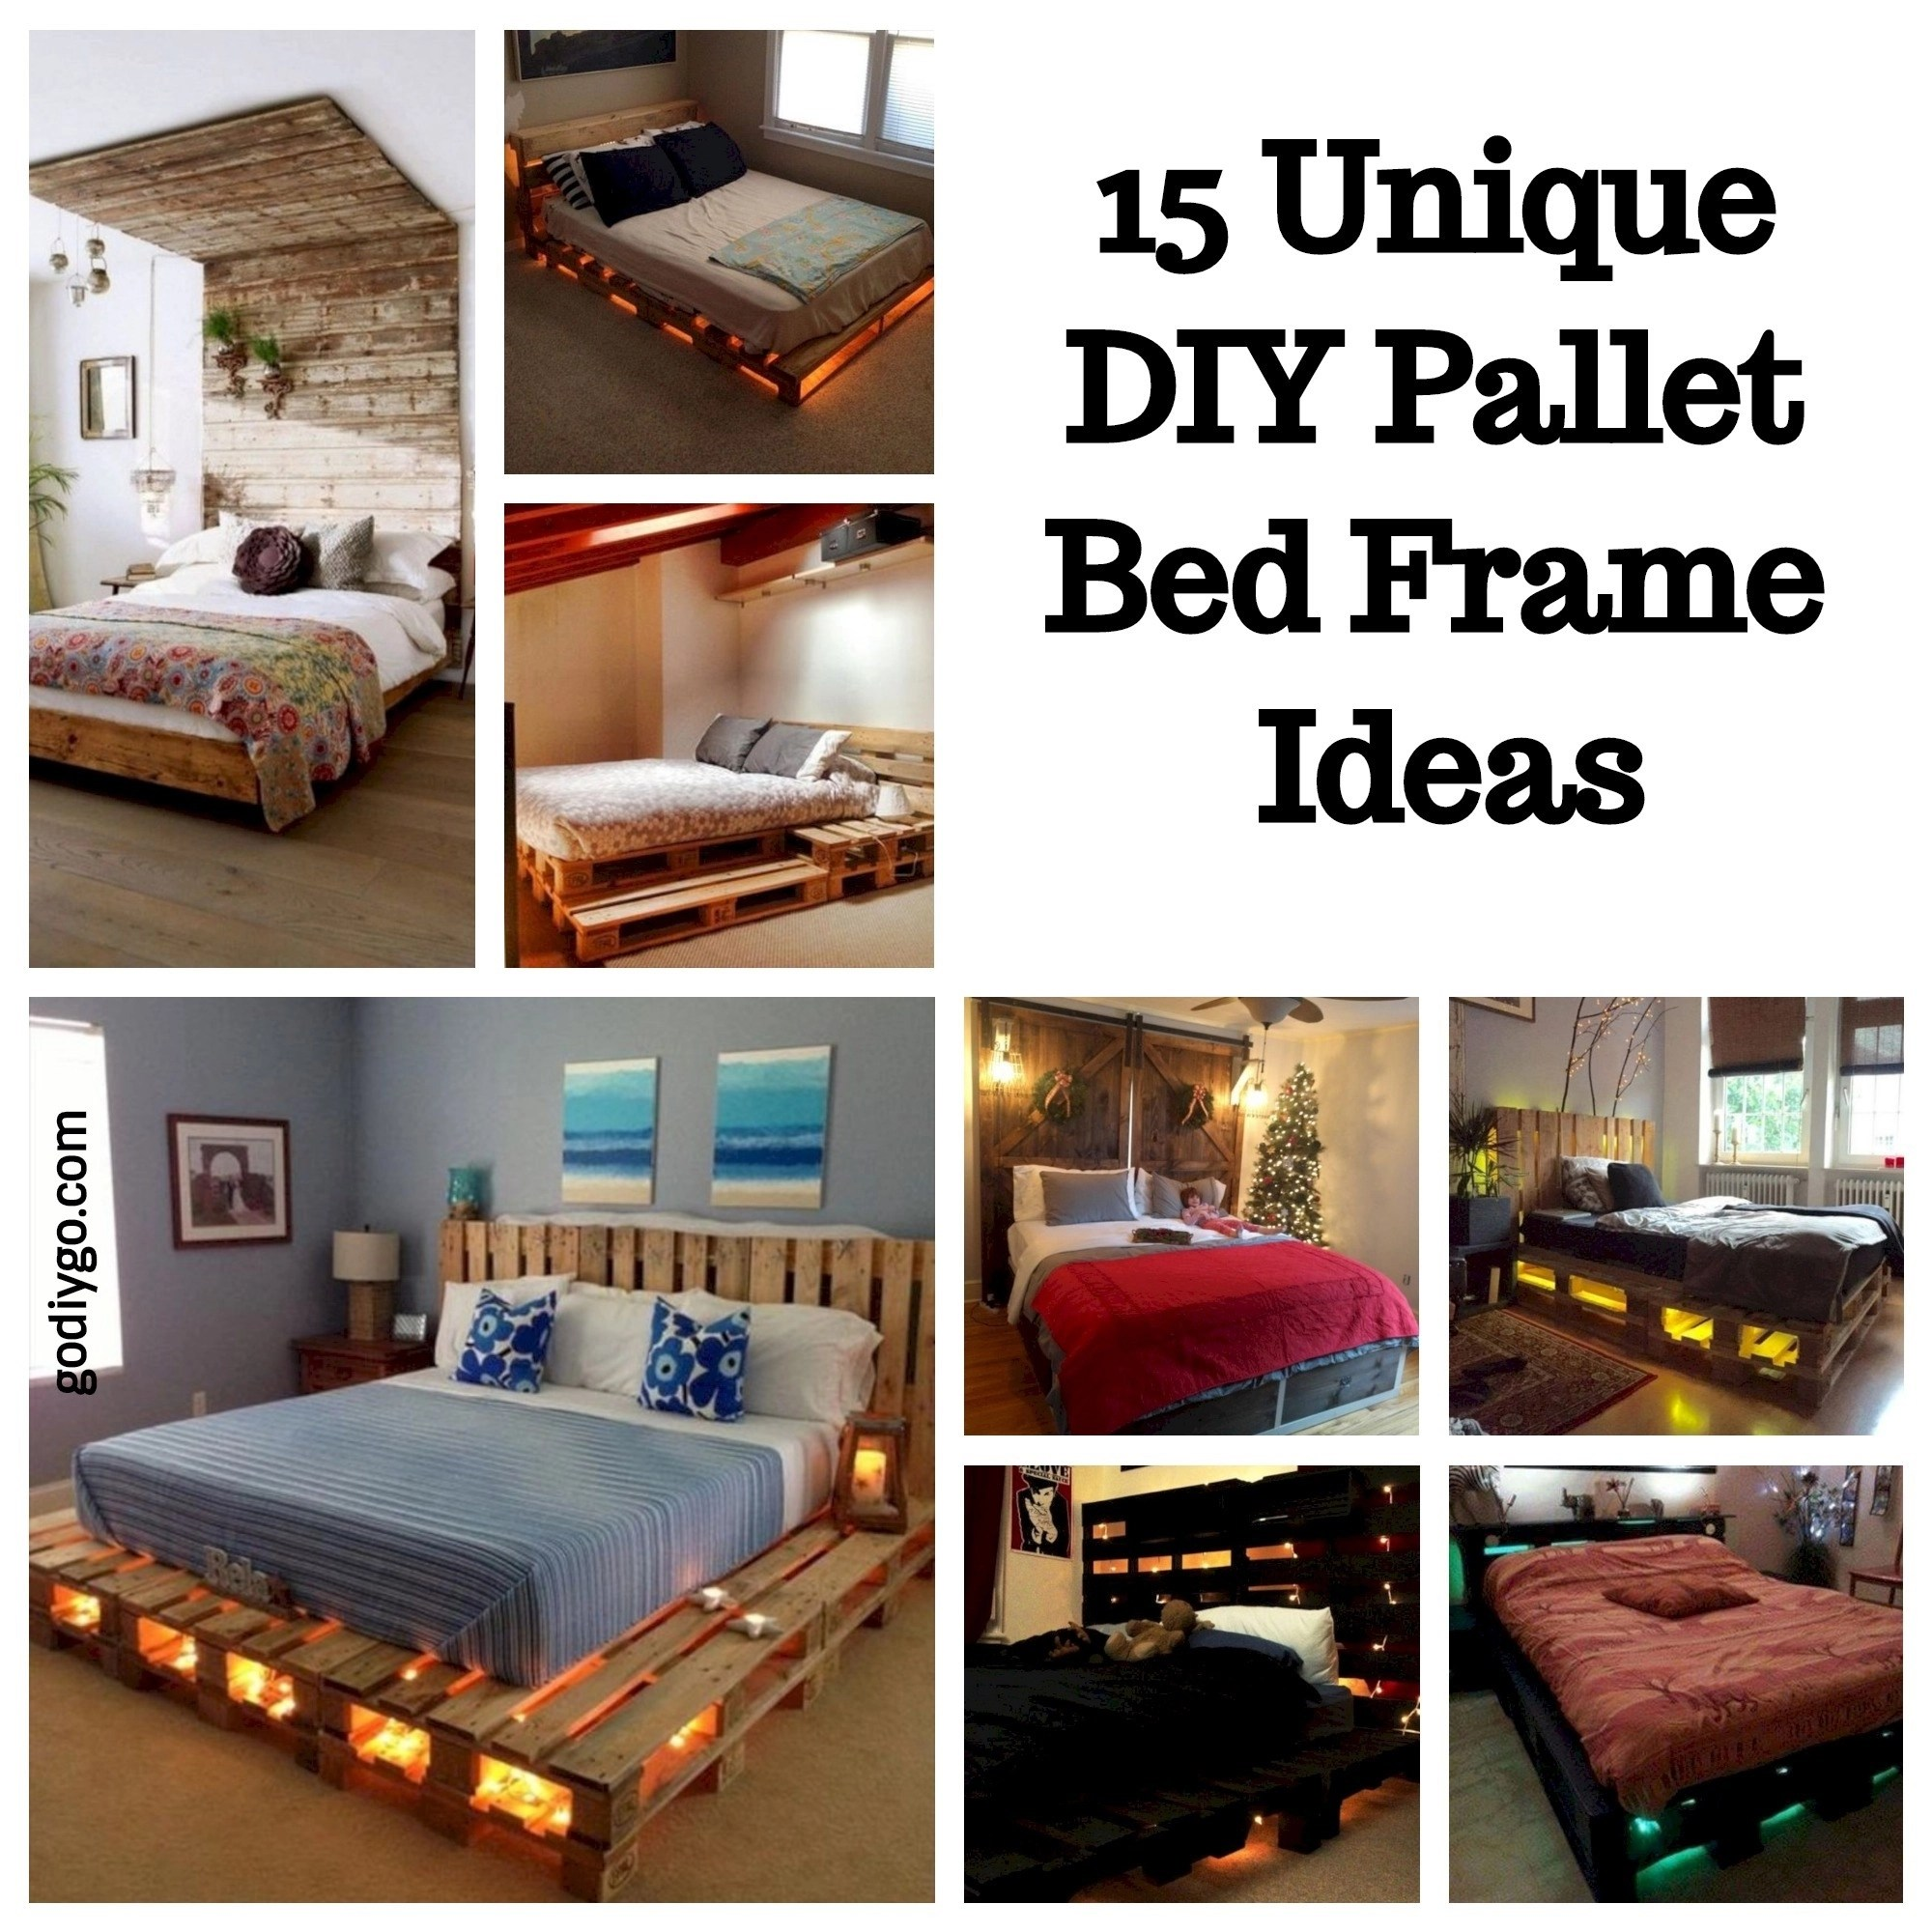 15 Unique DIY Pallet Bed Frame Ideas - GODIYGO.COM